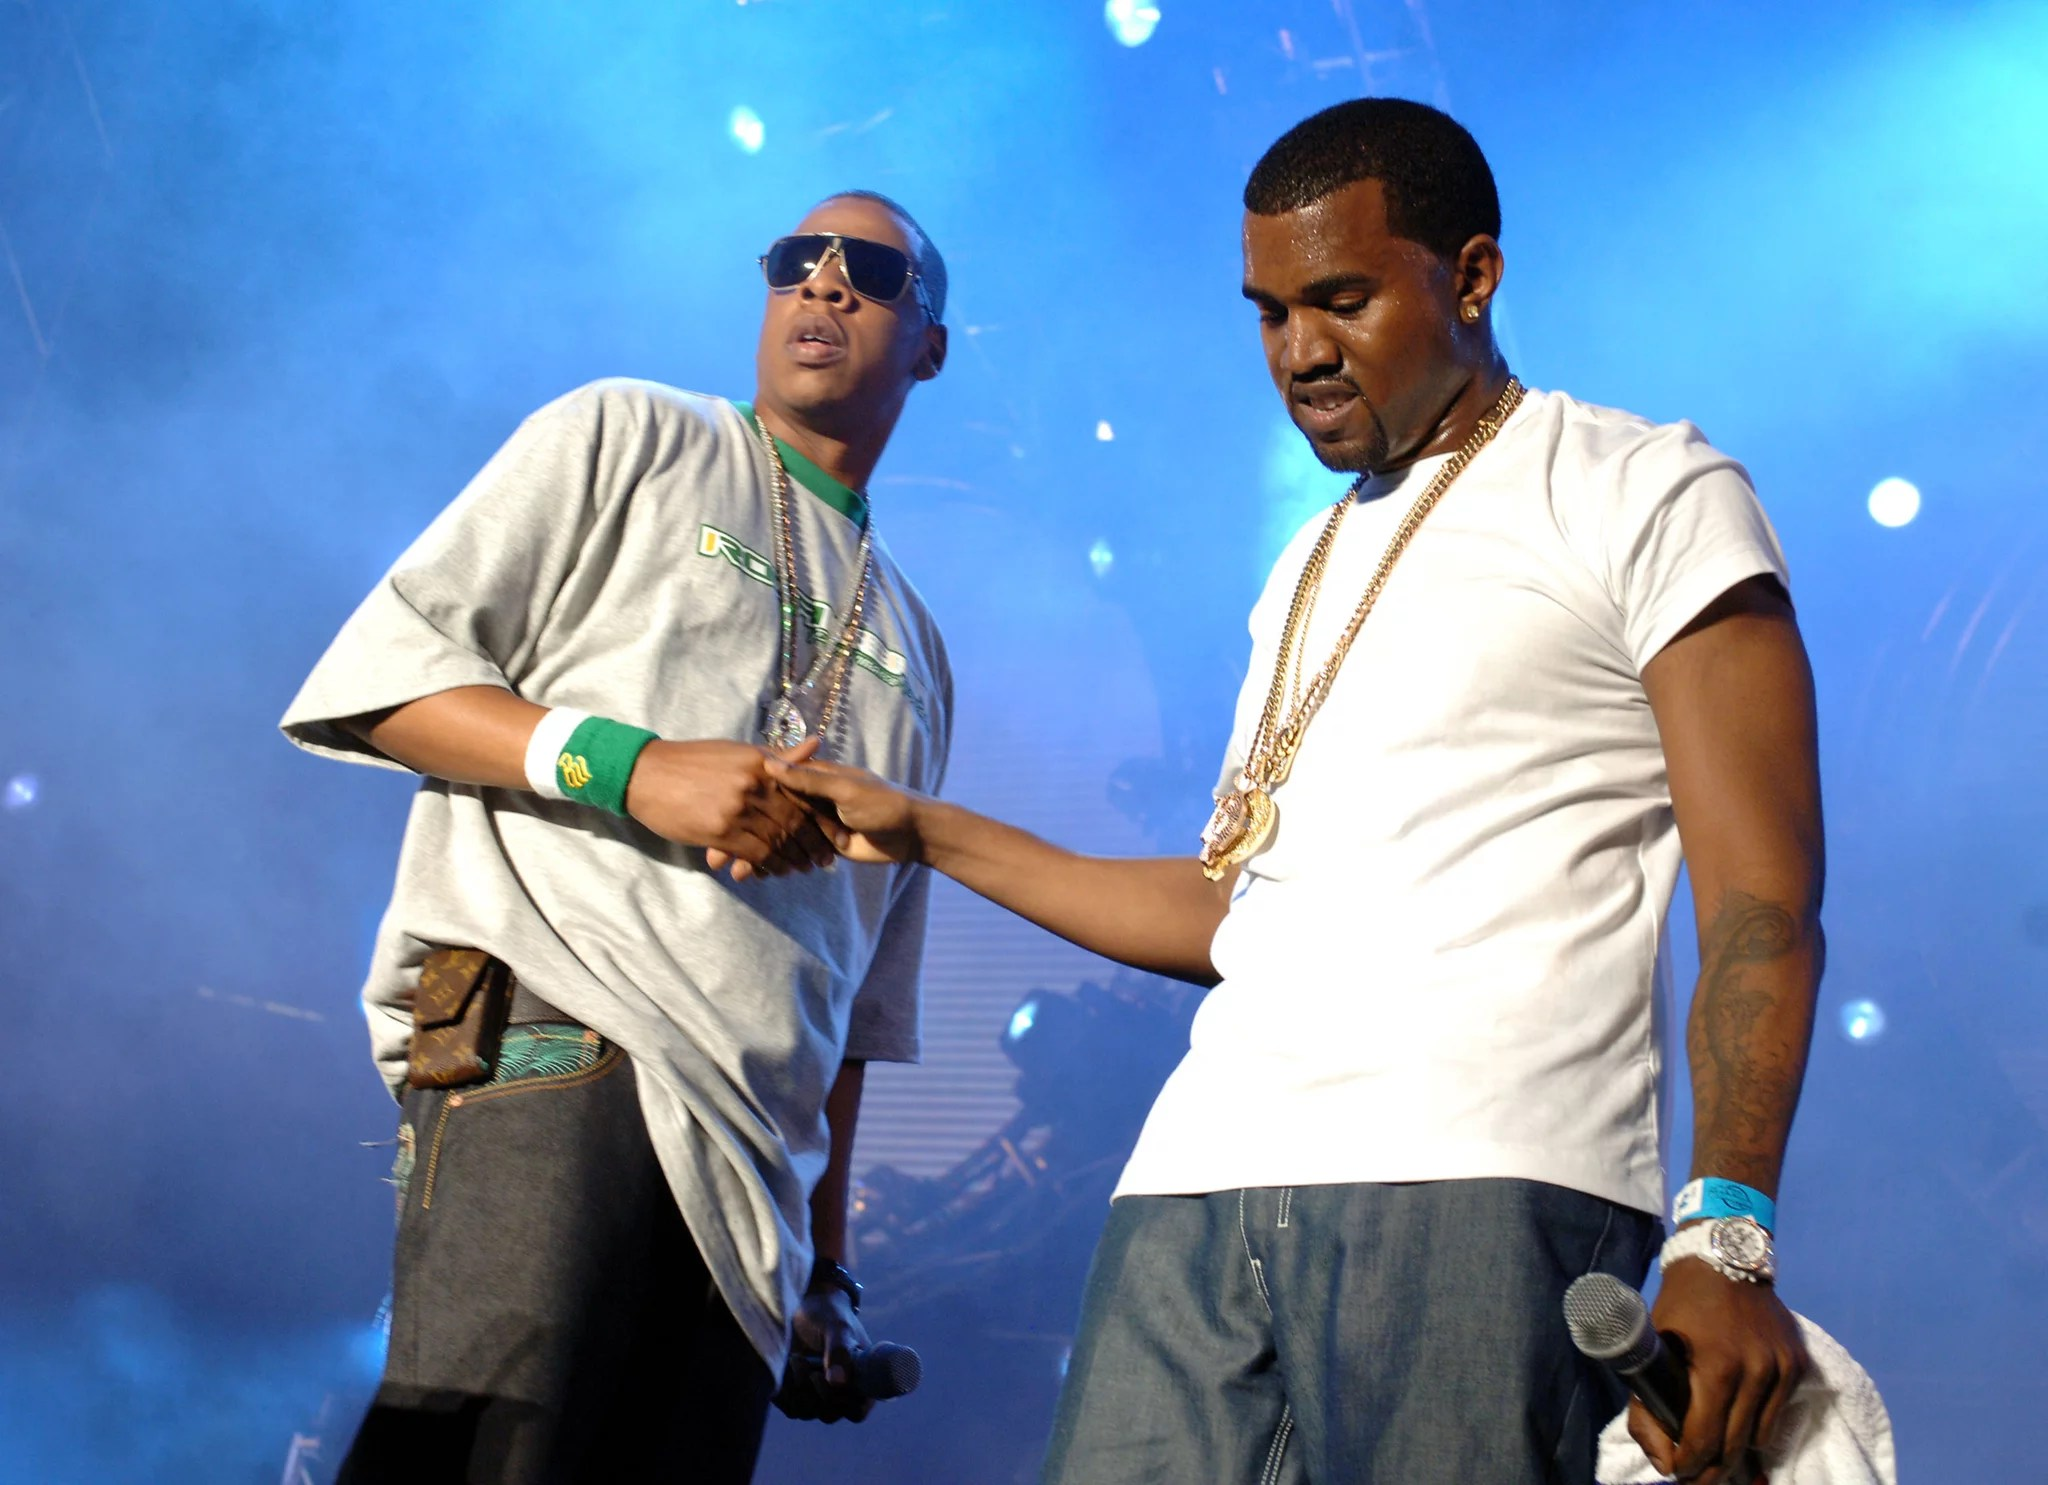 Jay-Z and Kanye West (Photo by Theo Wargo/WireImage for Hot 97)